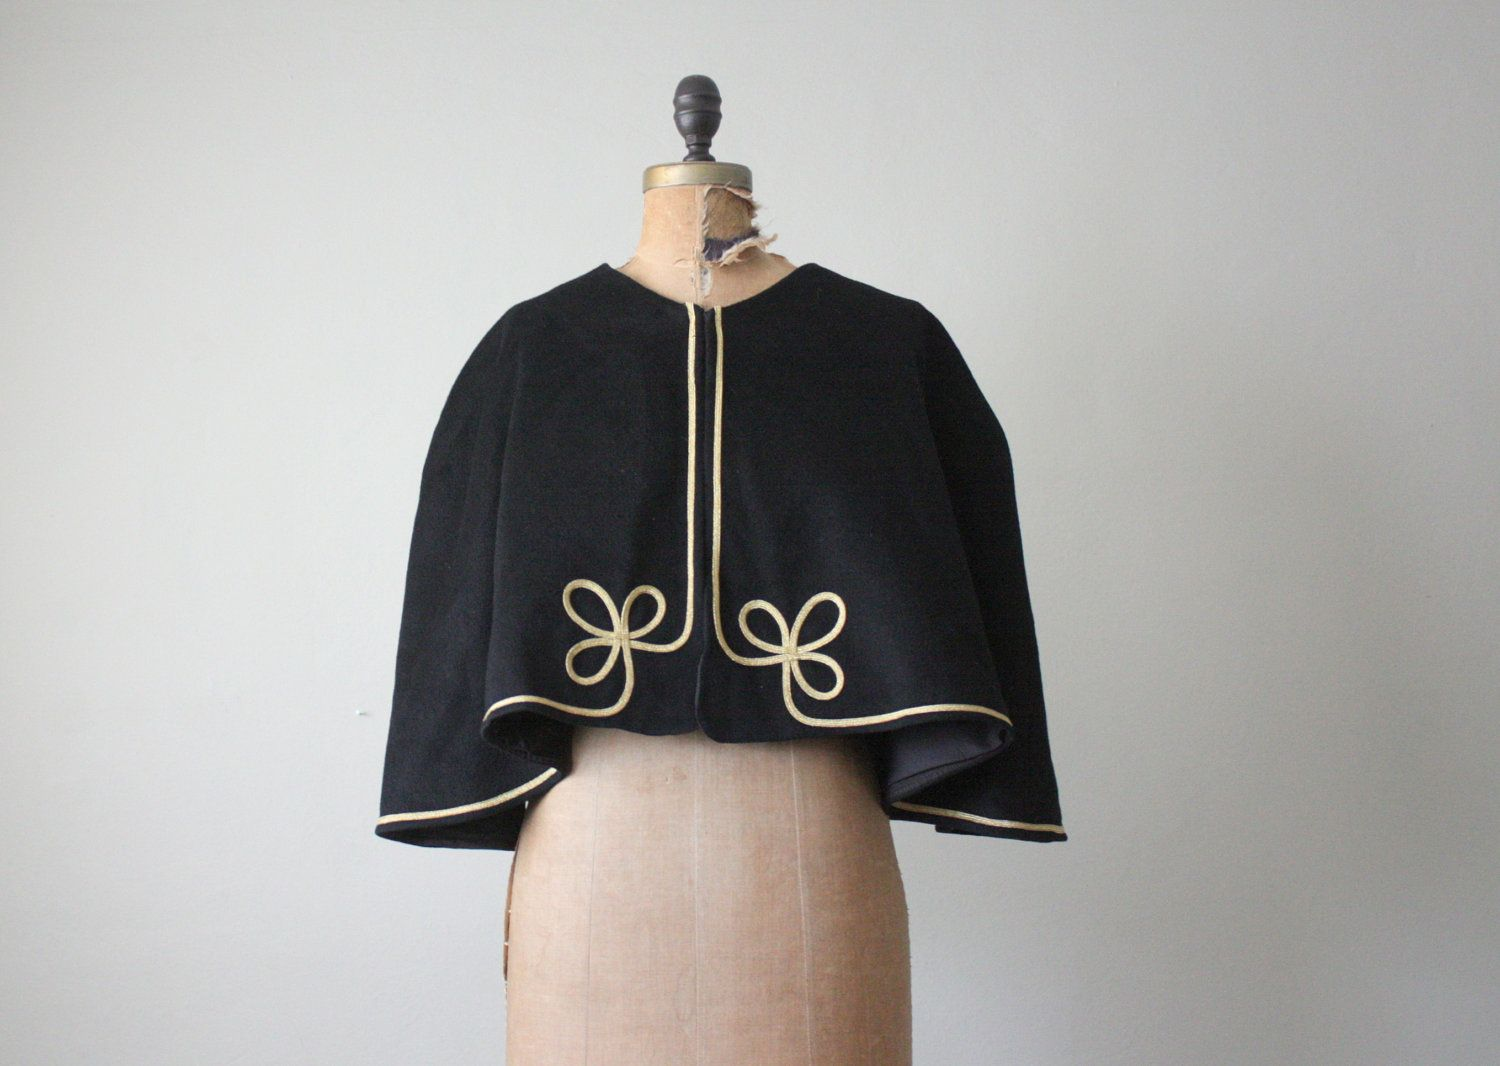 Black wool cape from the 1940s.